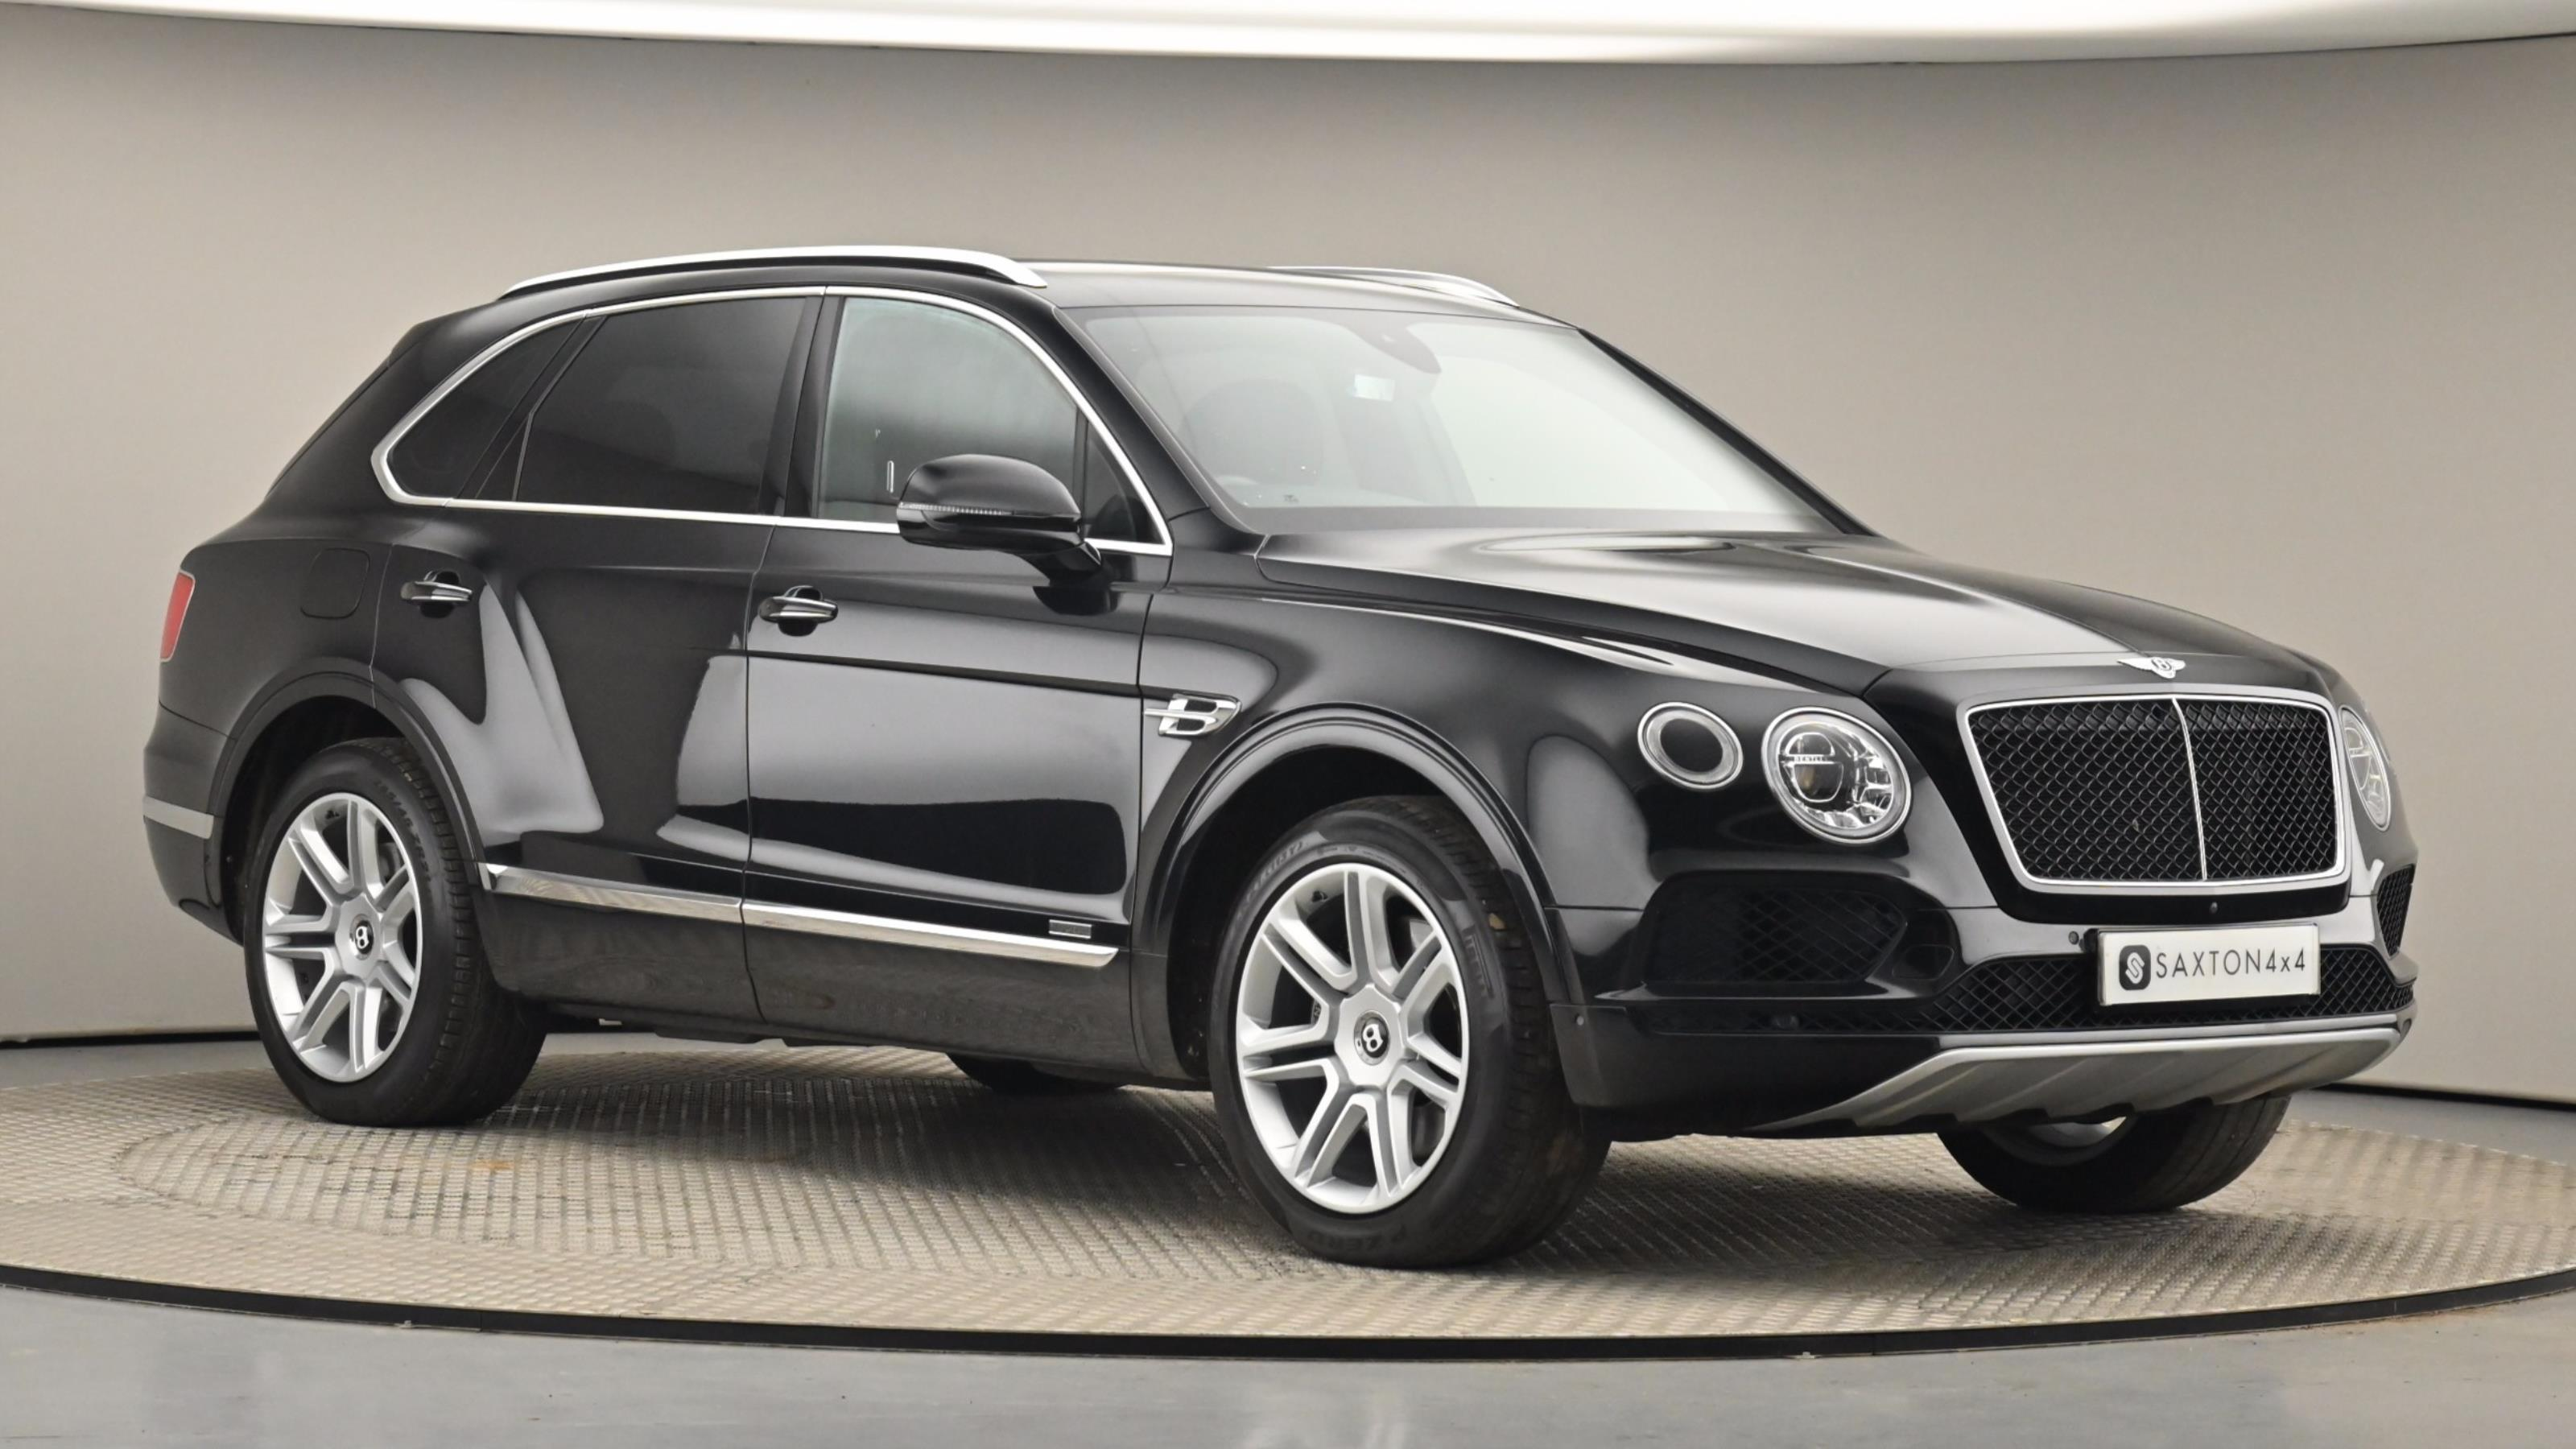 Used 2018 Bentley BENTAYGA 4.0 V8 5dr Auto BLACK at Saxton4x4